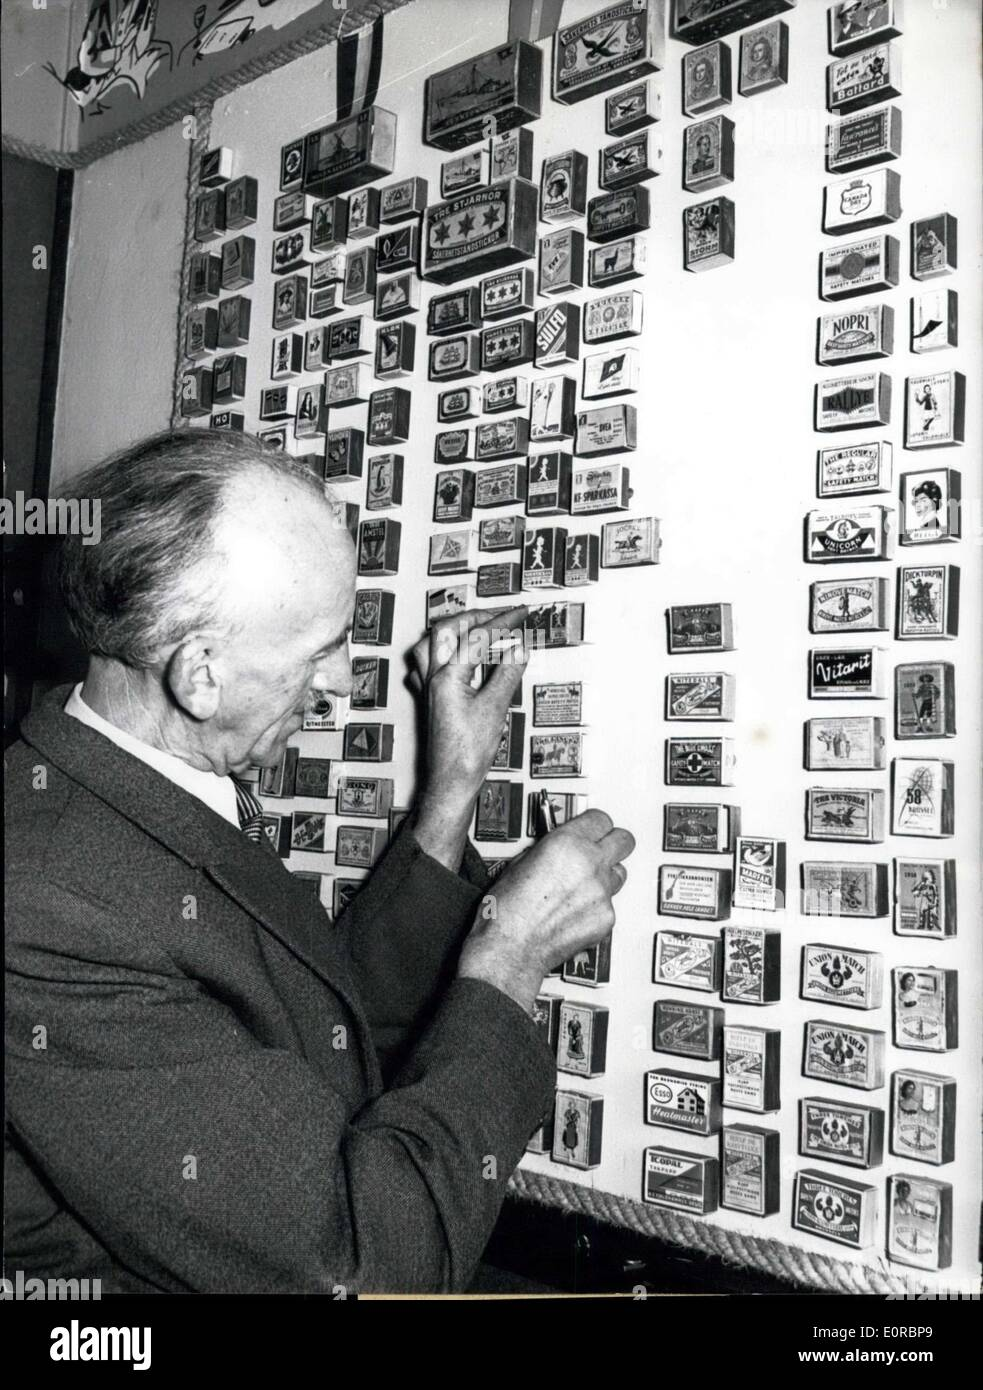 Dec. 30, 1958 - An effective idea for advertising: had the tobacconist Hellmuth Mohr from Bremen. He ''prepared the walls of his shop with more than a thousand match-boxes from all over the world which he had brought to him by sailors who a the main customers of his, from all parts of the world. - Stock Image